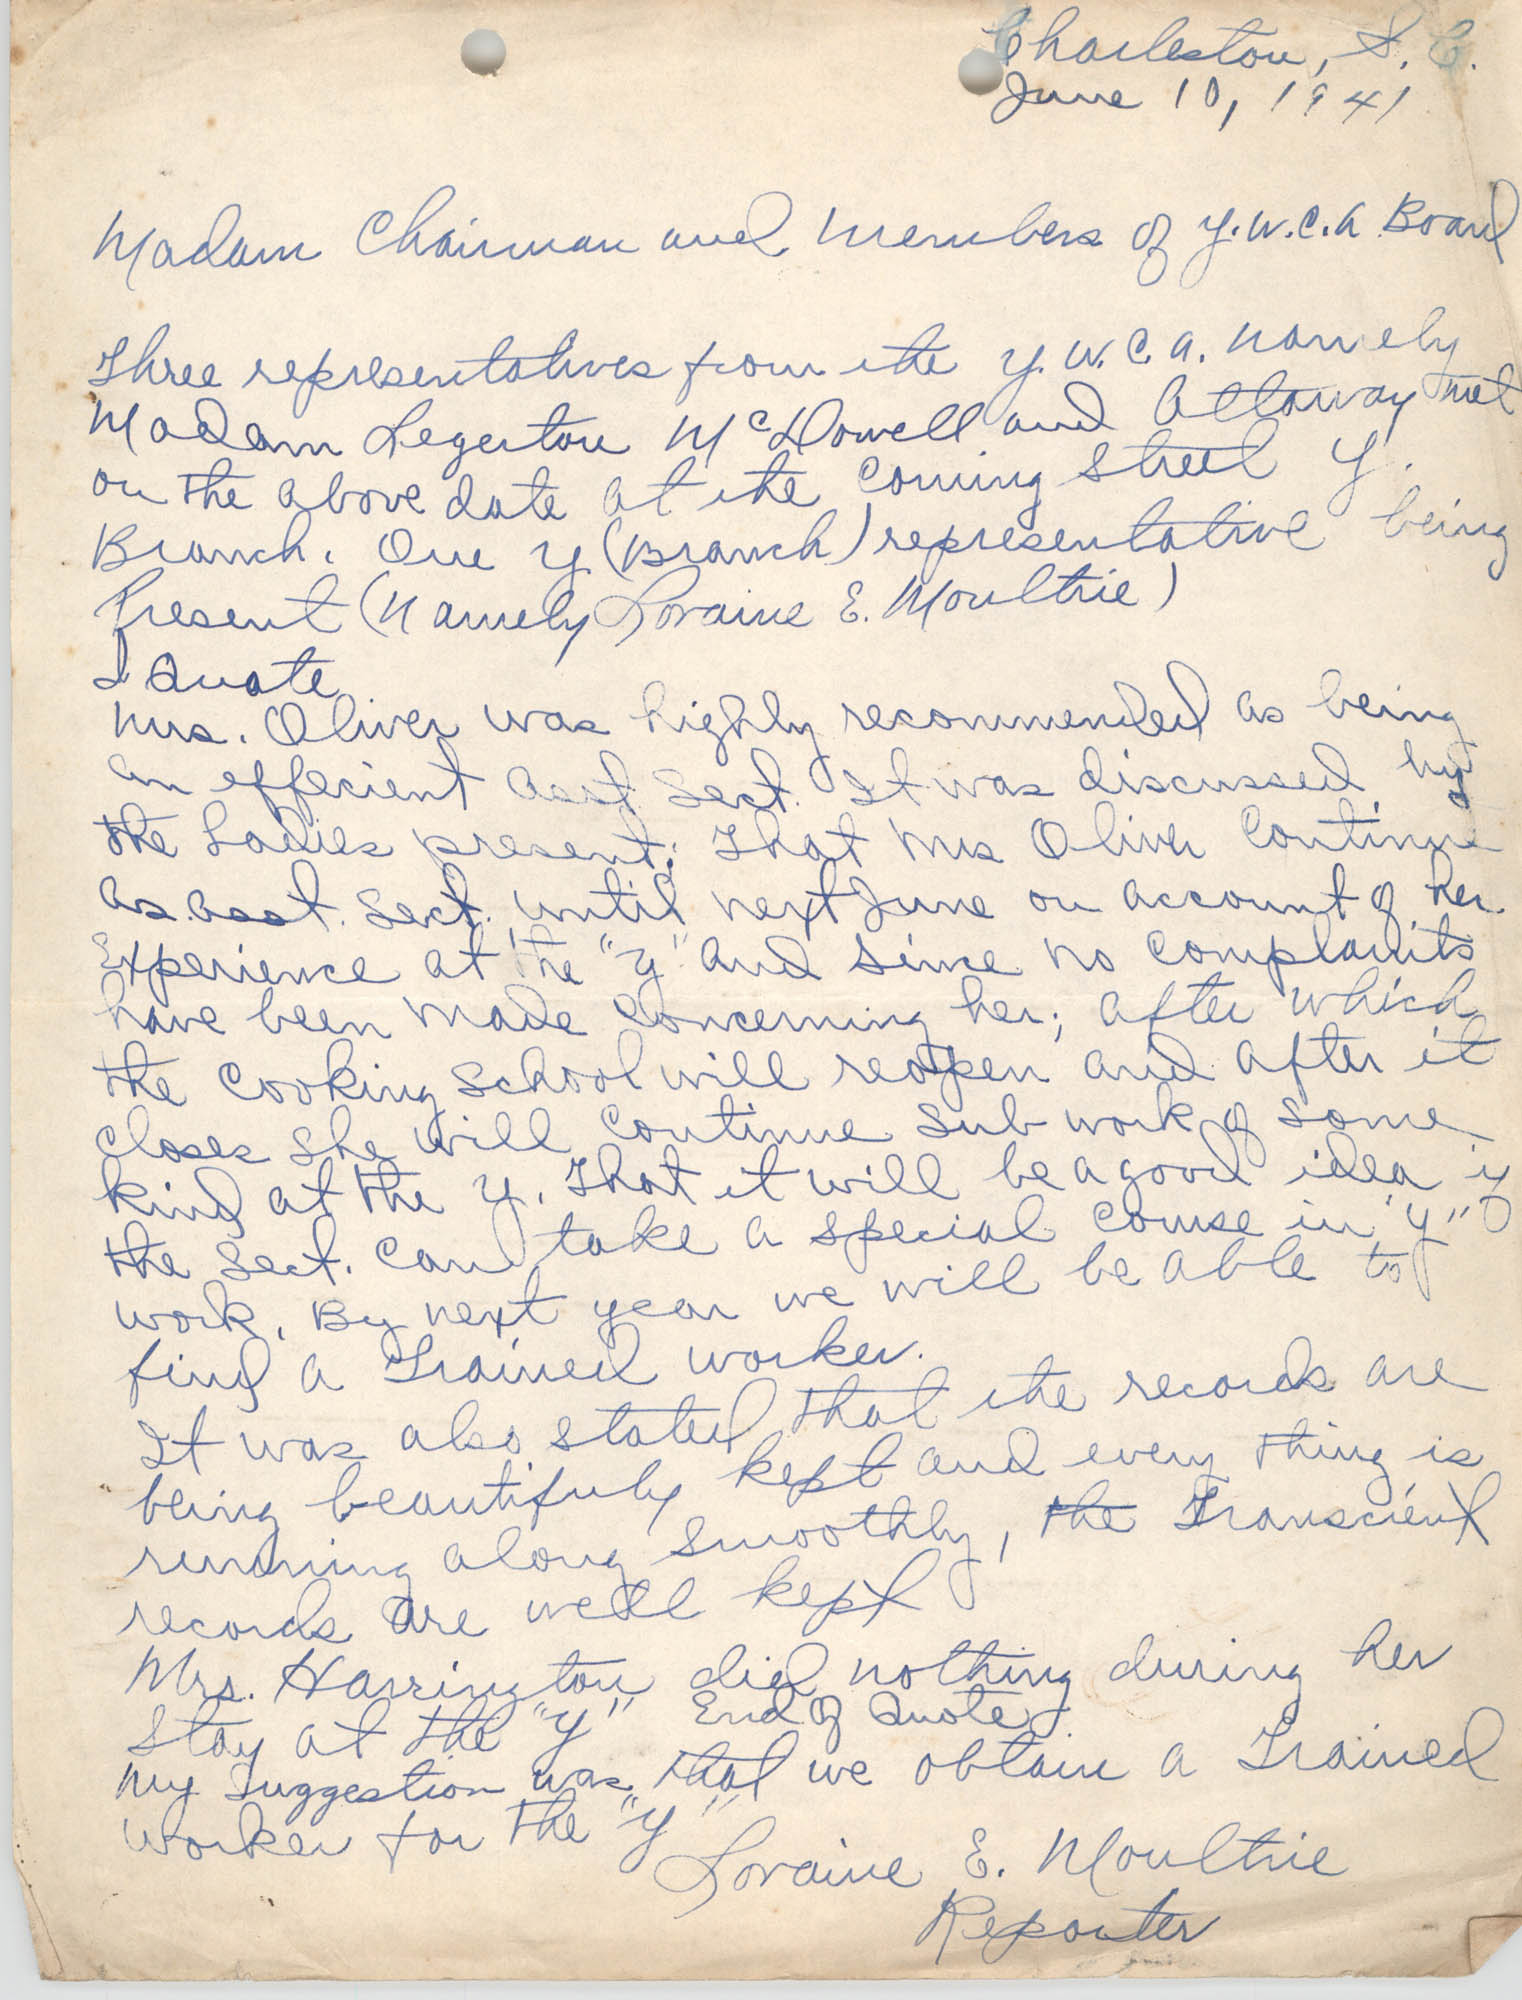 Letter from Loraine E. Moultie to Y.W.C.A. Board, June 10, 1941